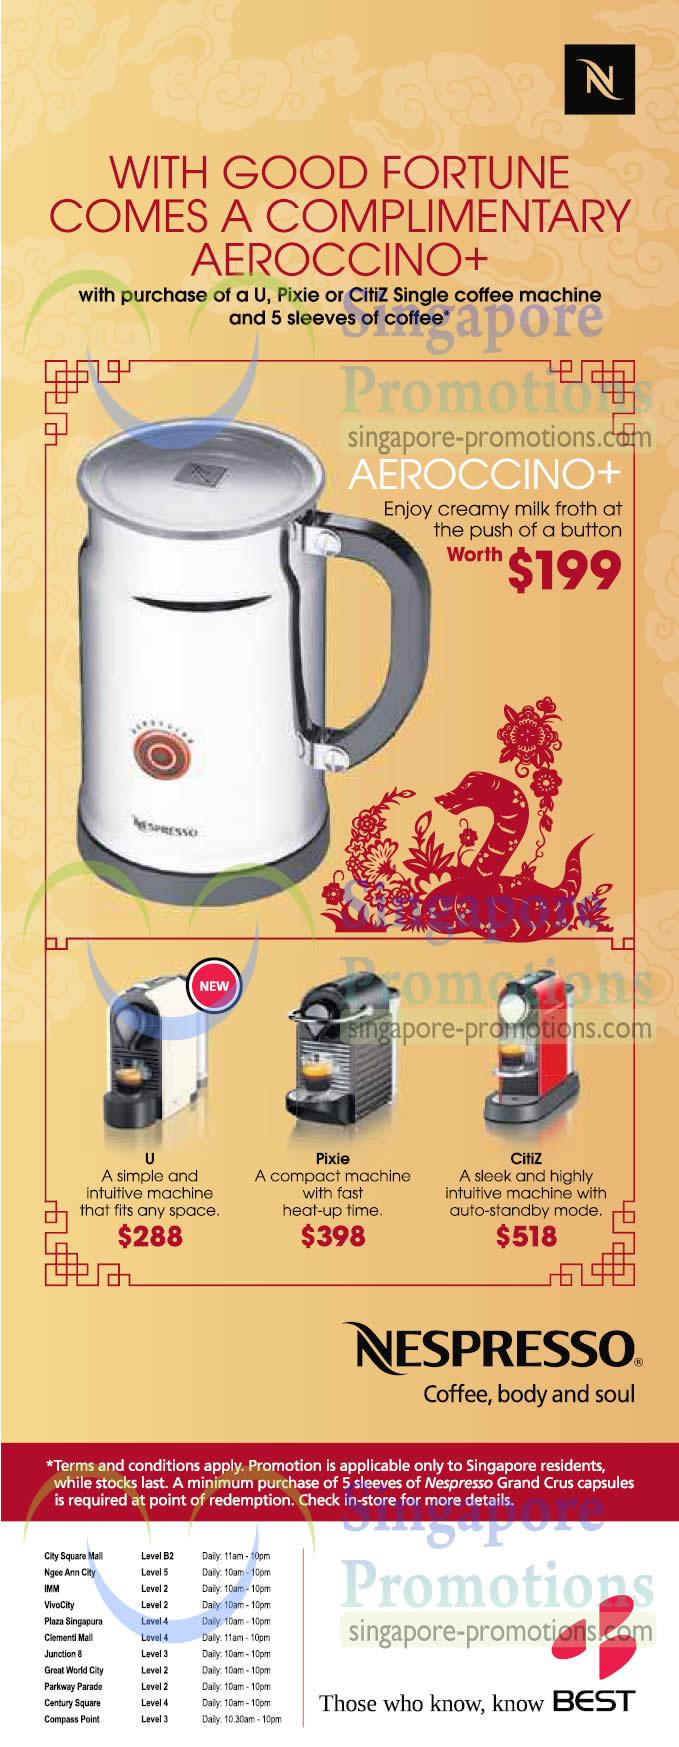 best denki nespresso coffee machines promotion offers 25 jan 2013. Black Bedroom Furniture Sets. Home Design Ideas